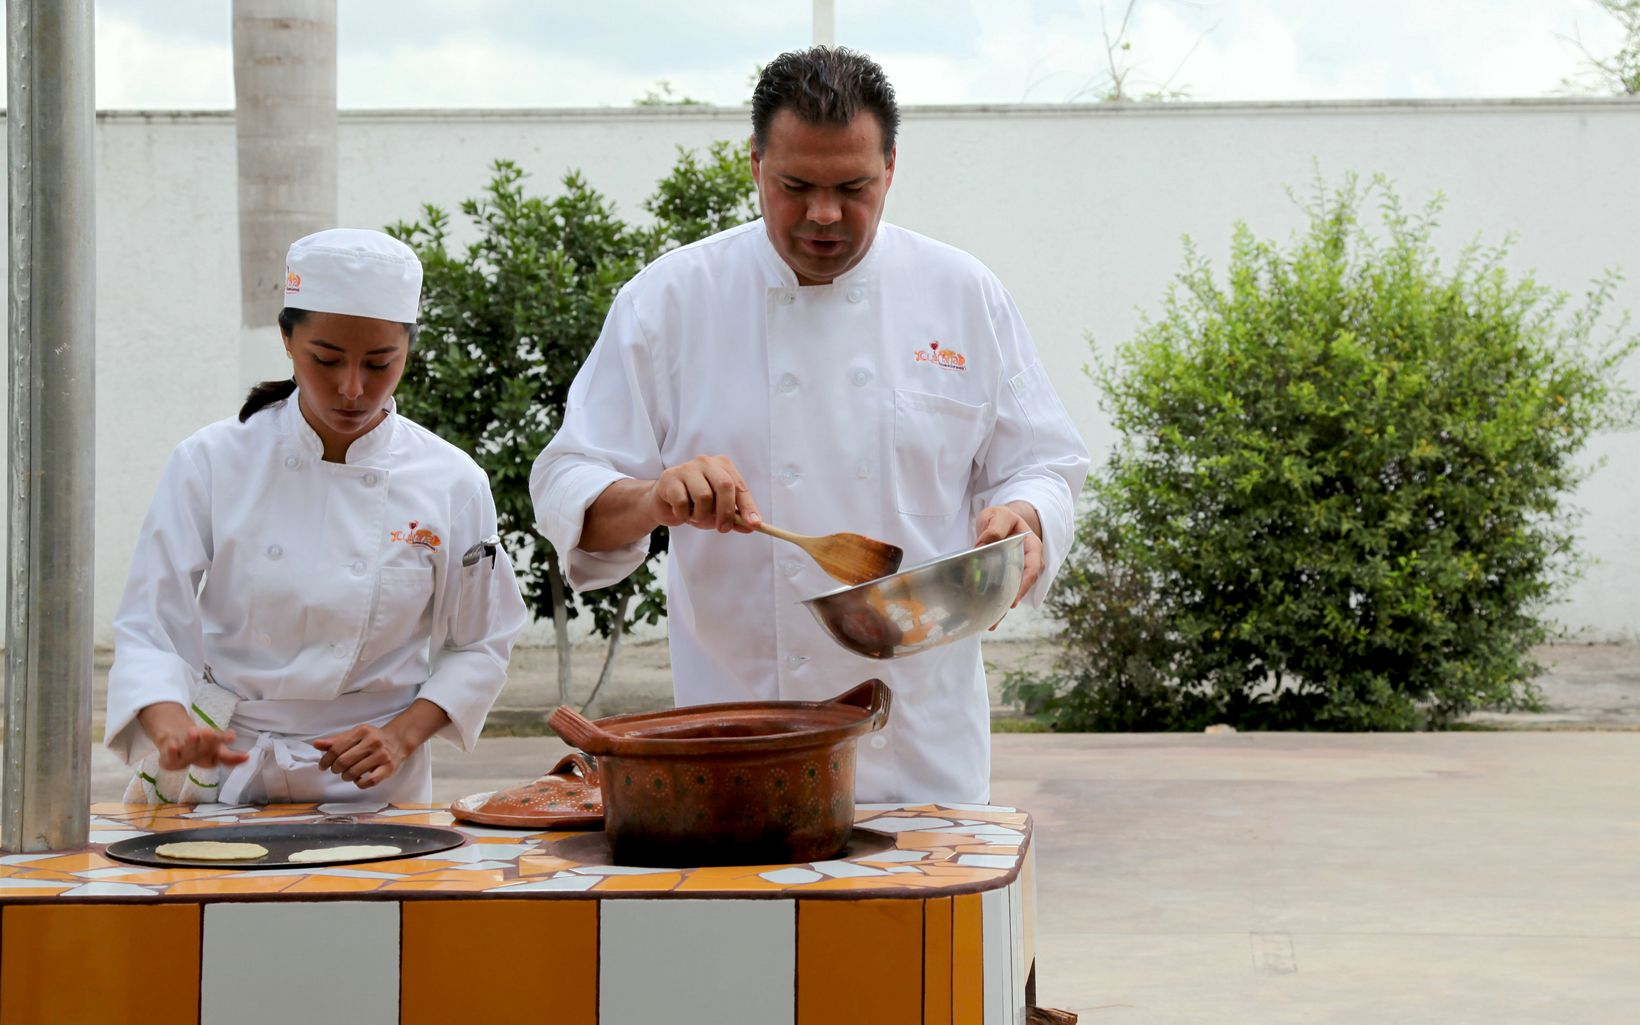 Mexican chef Luis Barocio and a student cook on a Tuumb